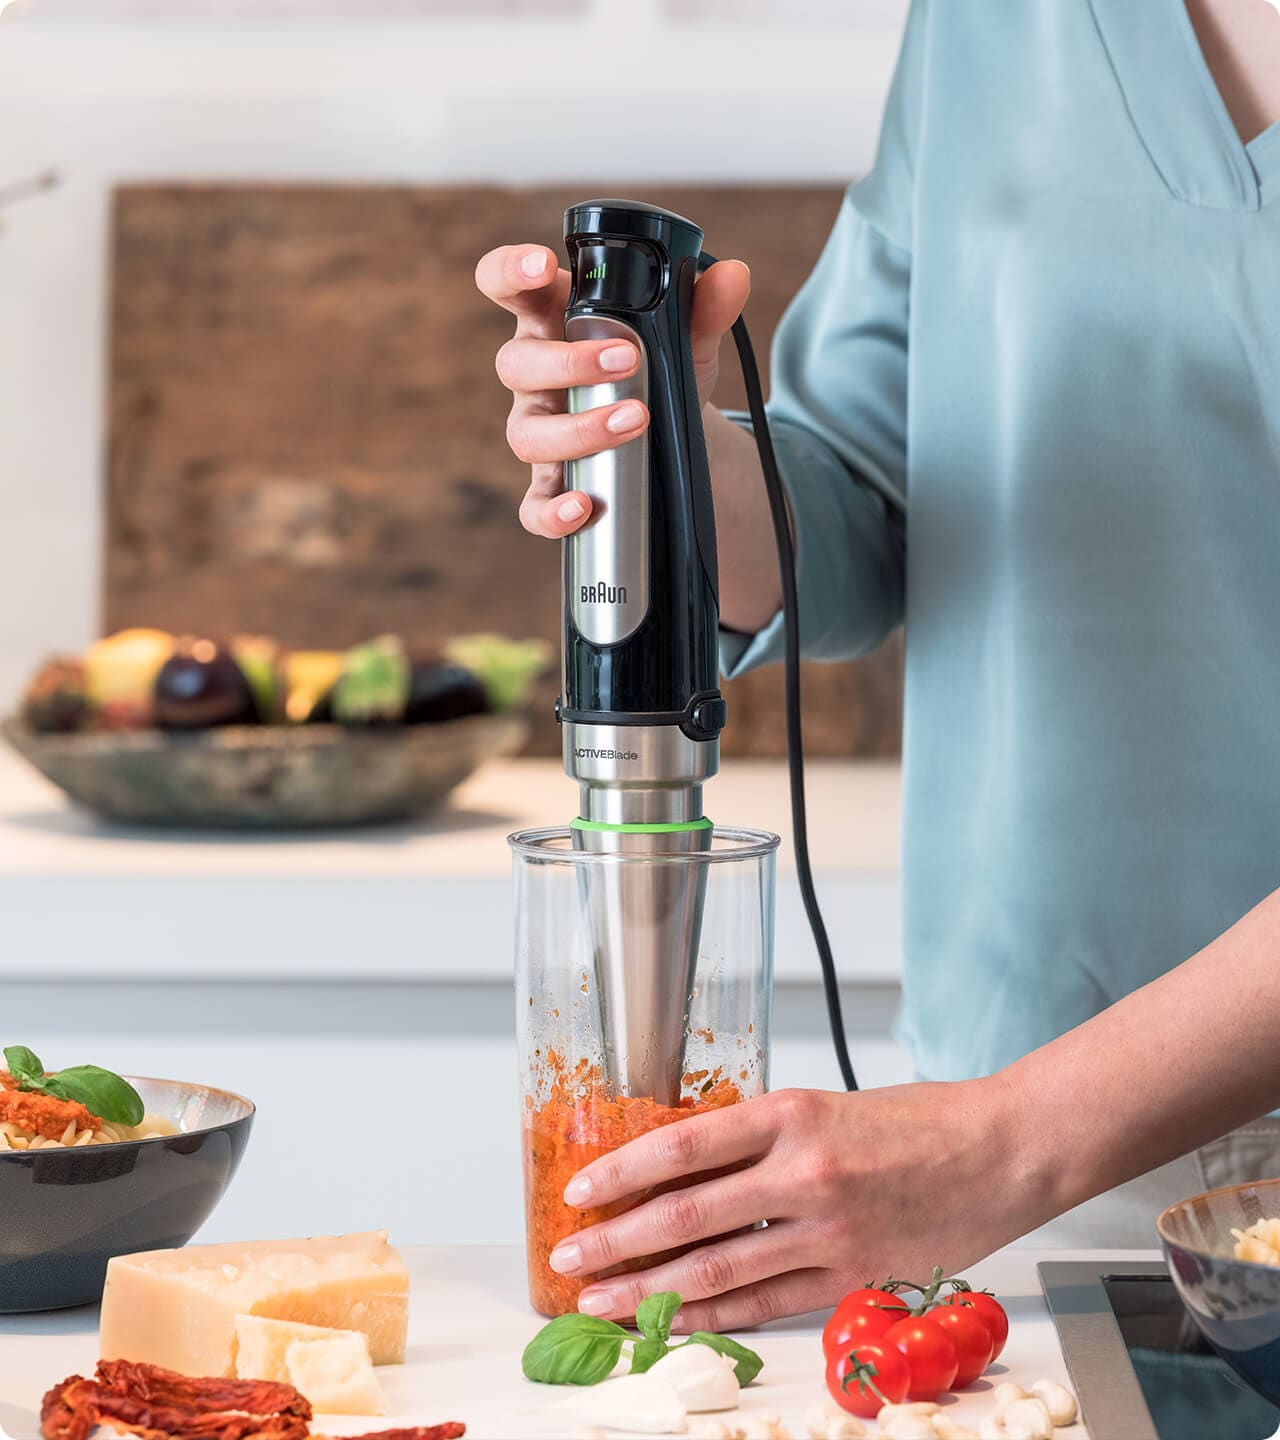 Braun Multiquick hand blenders – The no. 1 hand blender brand.